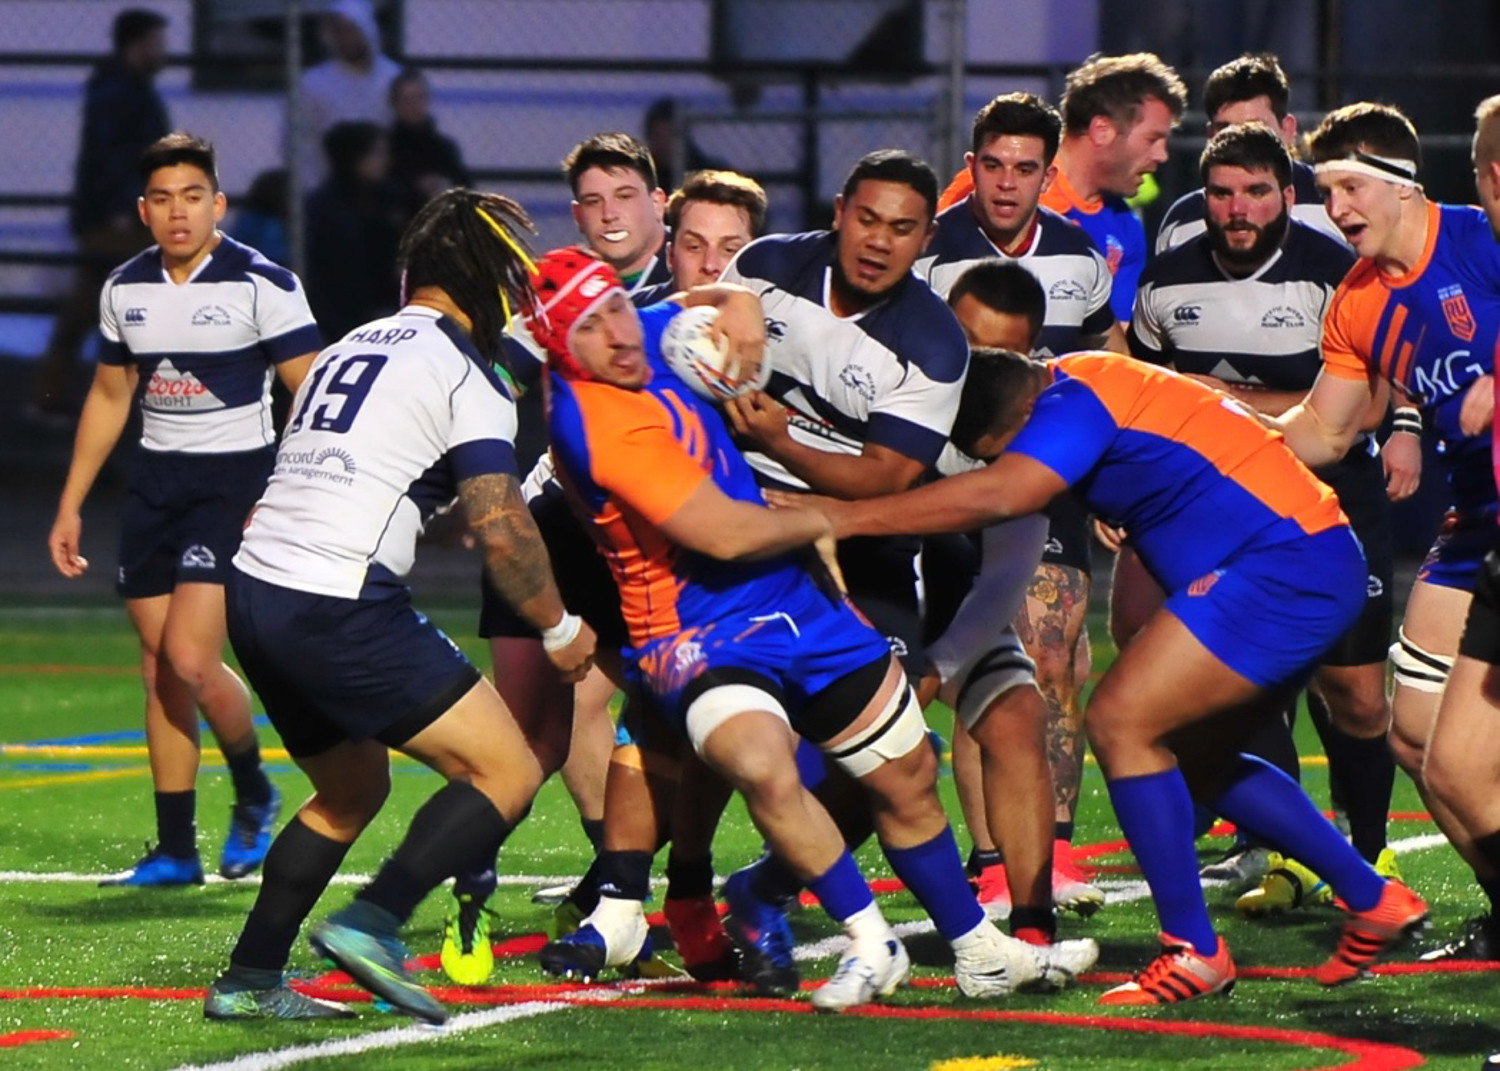 Rugby United New York had no trouble scoring against Boston as the fledgling pro team posted a 50-0 victory at Gaelic Park last Saturday night.